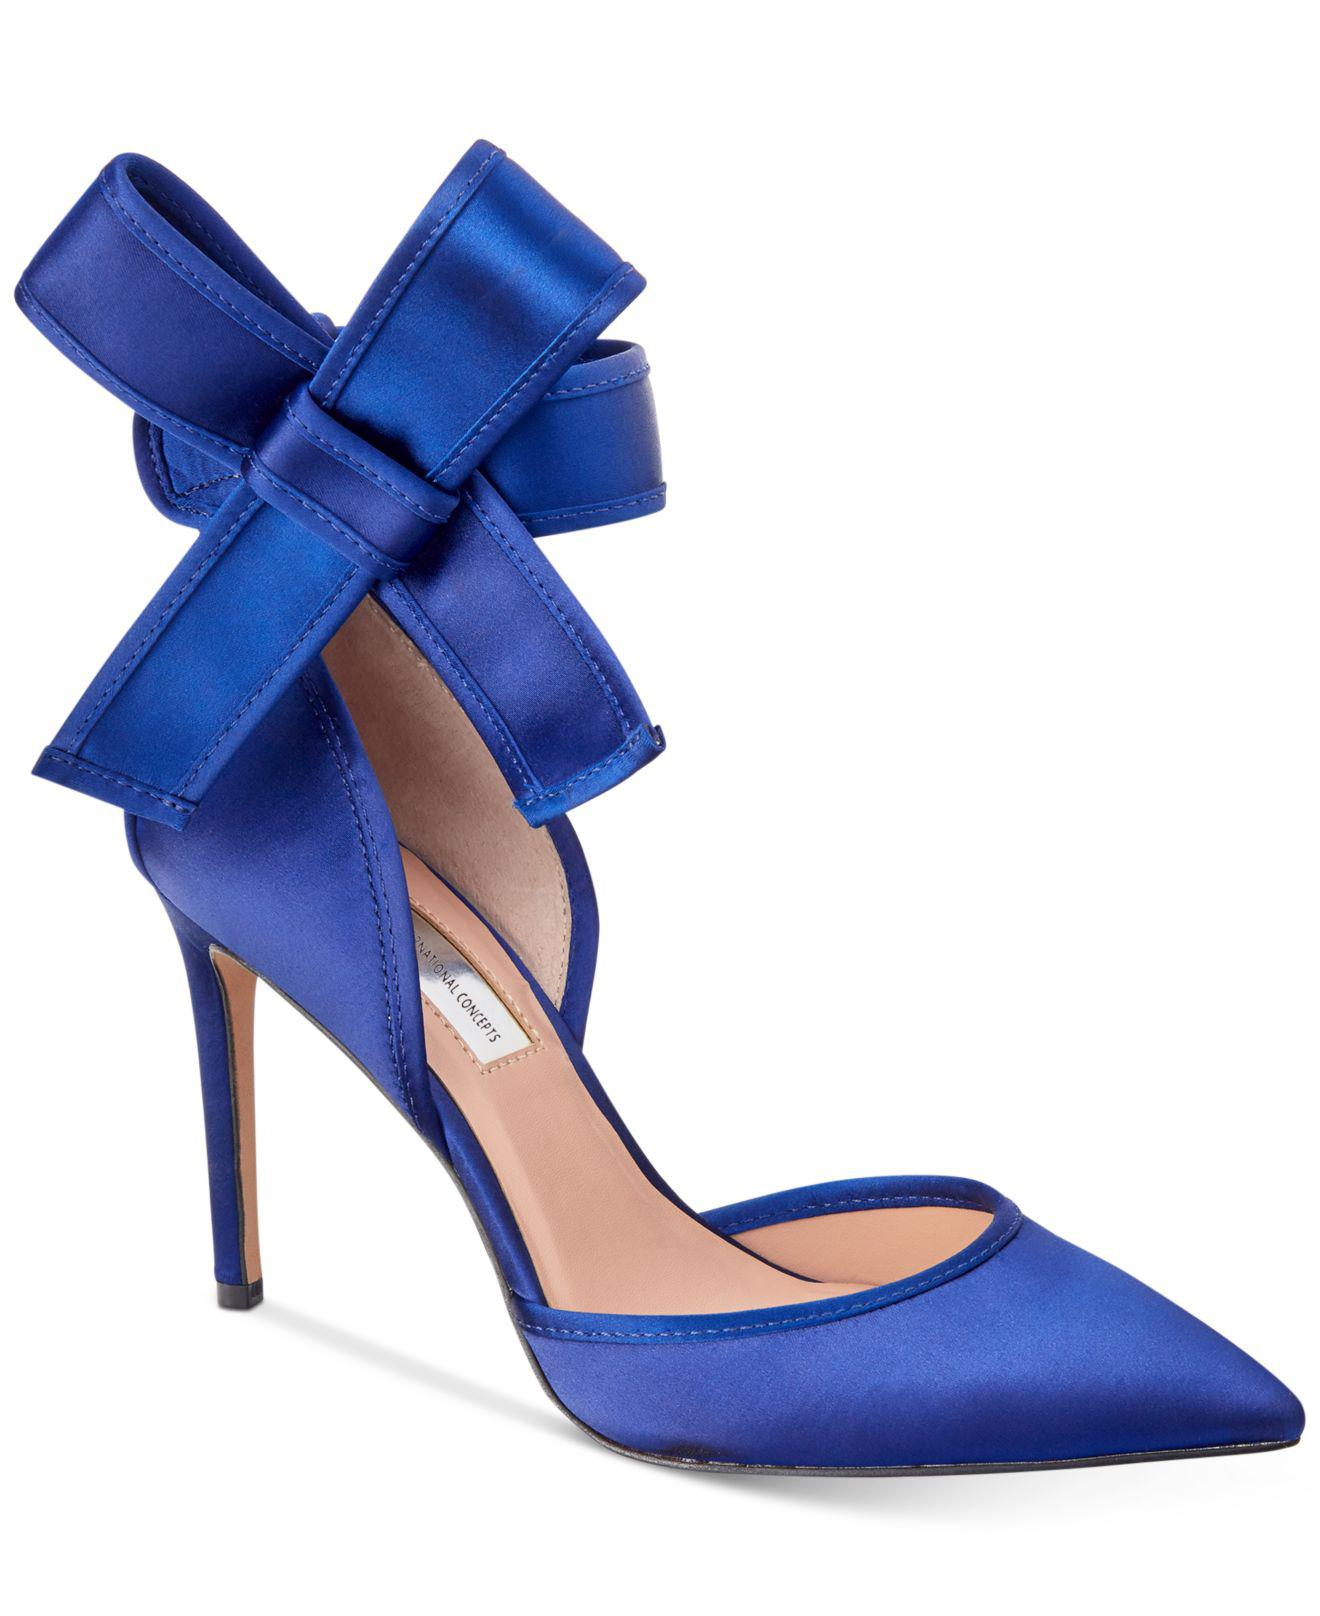 cbeb367a9 INC International Concepts Kaiaa Bow Pumps in Blue - Lyst